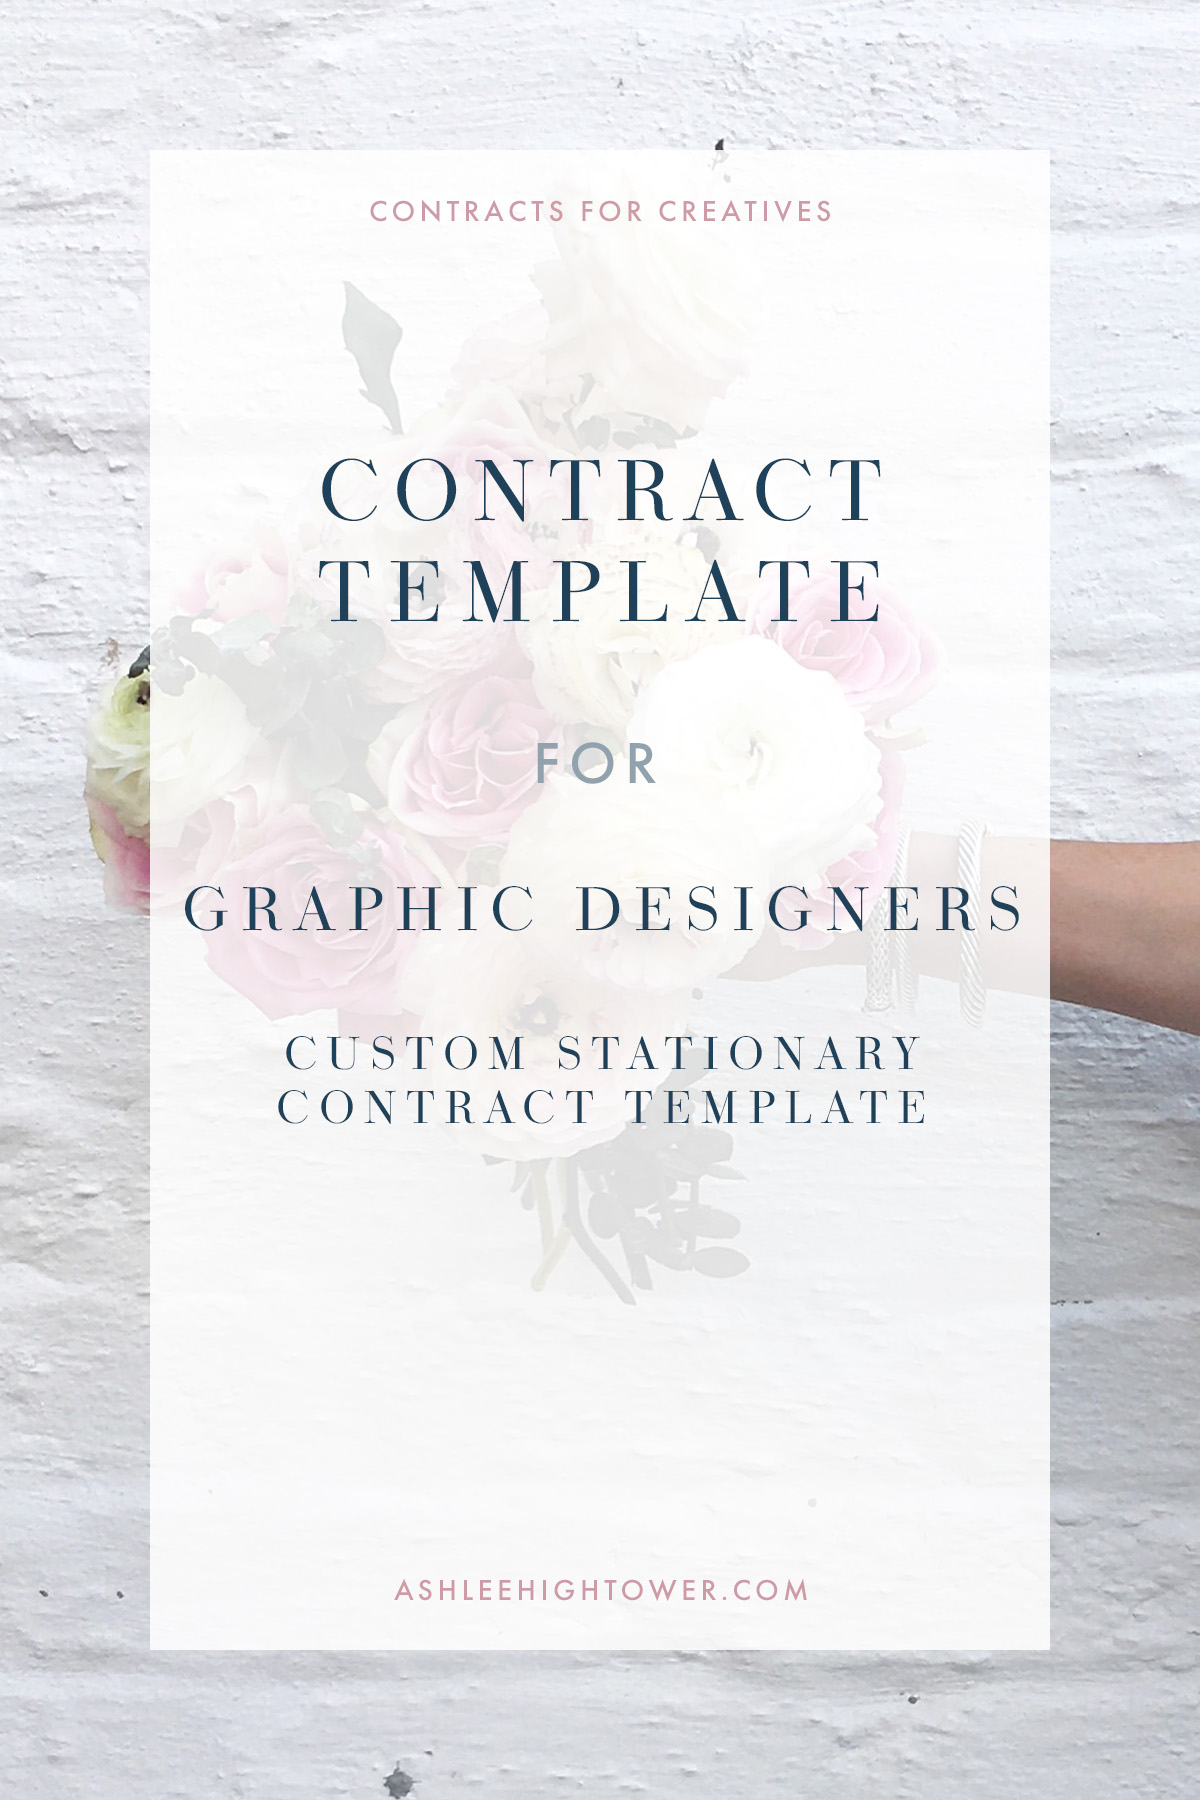 Contracts for Creatives | Custom Stationary Contract Template | Graphic Designer Contract | Ashlee Hightower